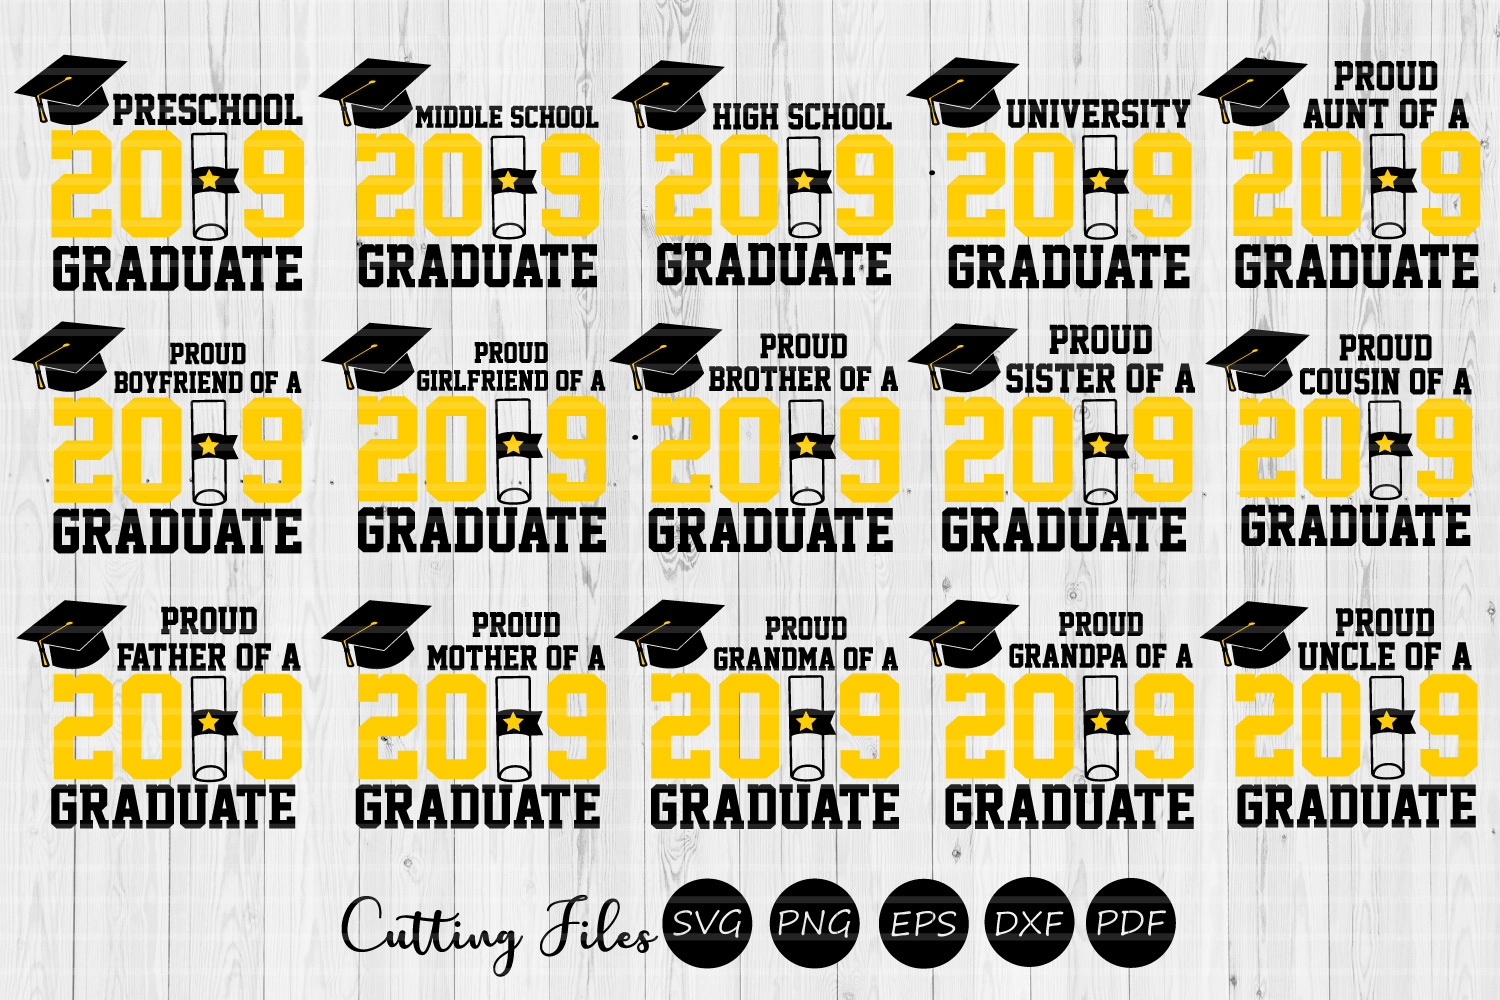 Download Free Graduation Bundle Graphic By Hd Art Workshop Creative Fabrica for Cricut Explore, Silhouette and other cutting machines.